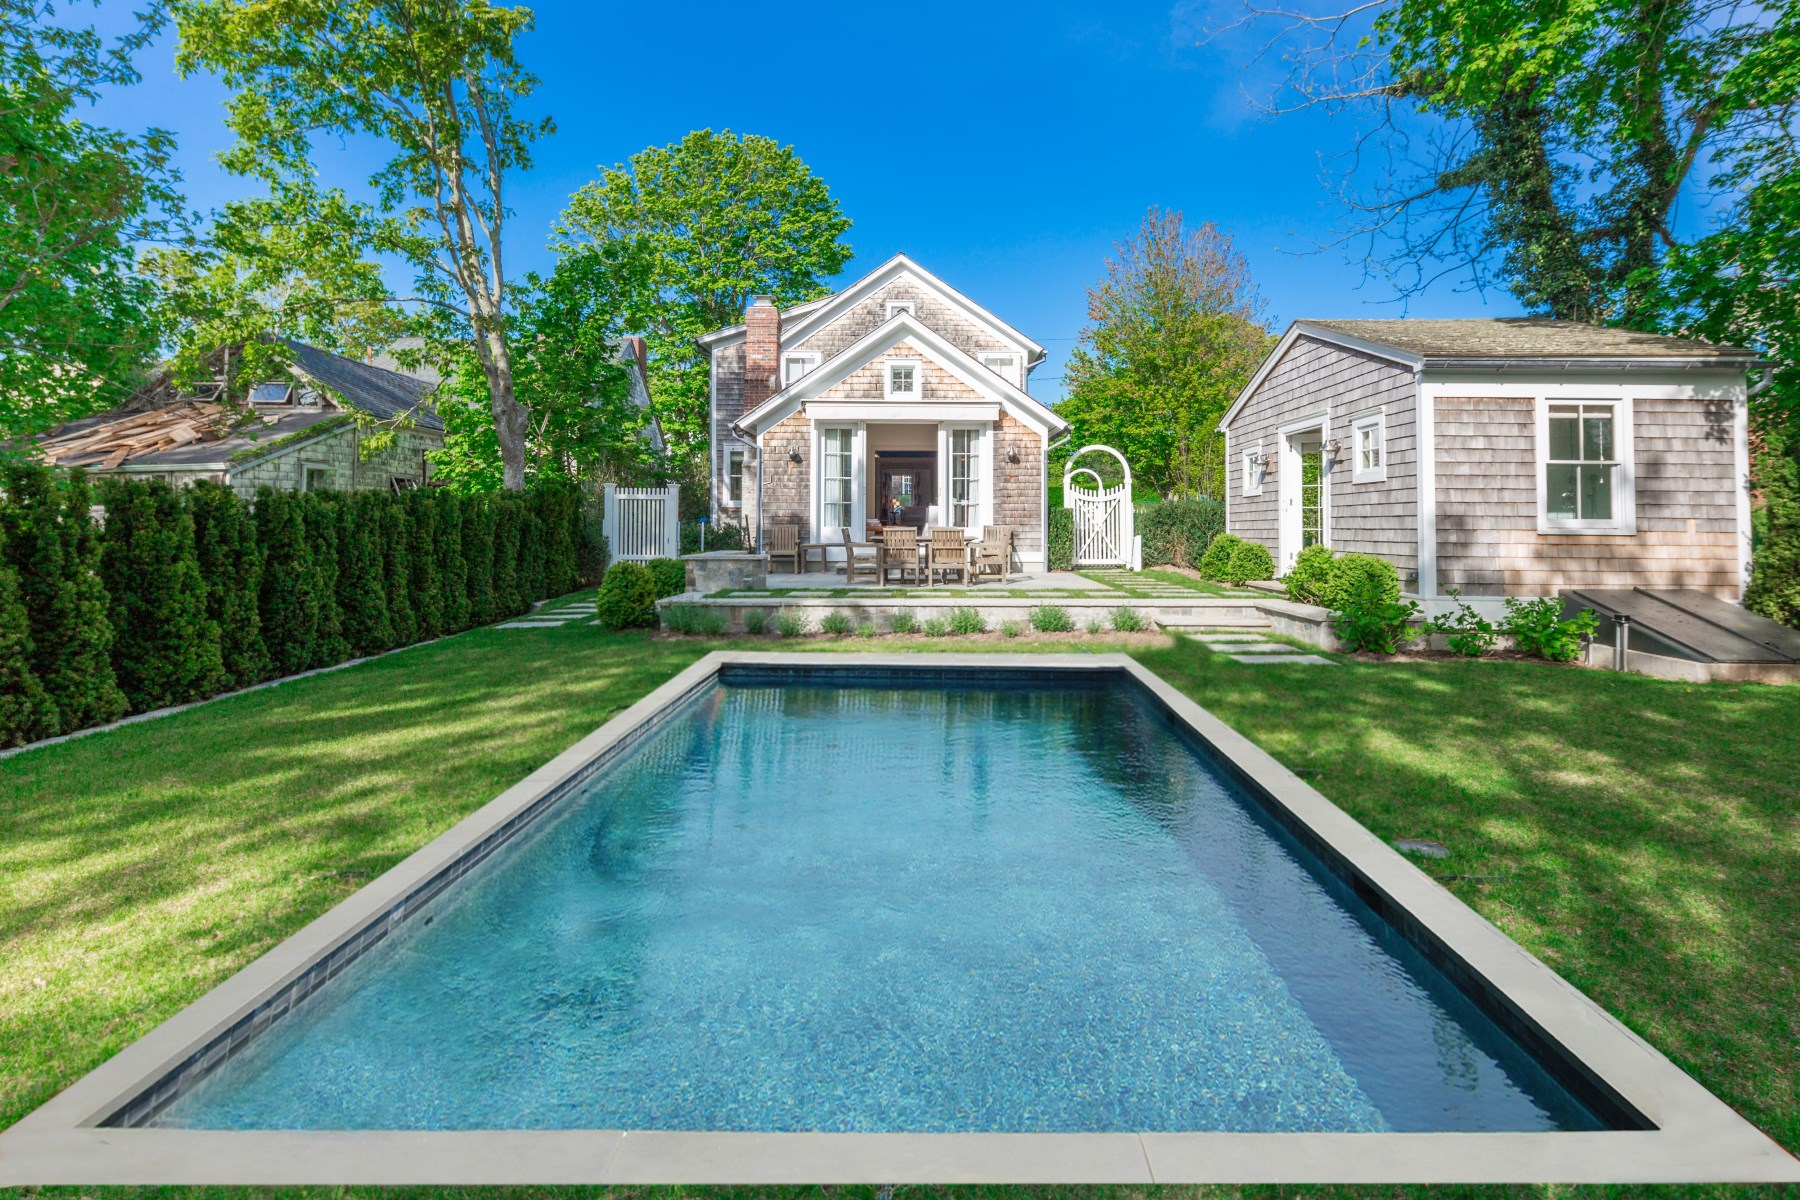 Single Family Home for Rent at Howard Street Dream House 35 Howard Street Sag Harbor, New York 11963 United States